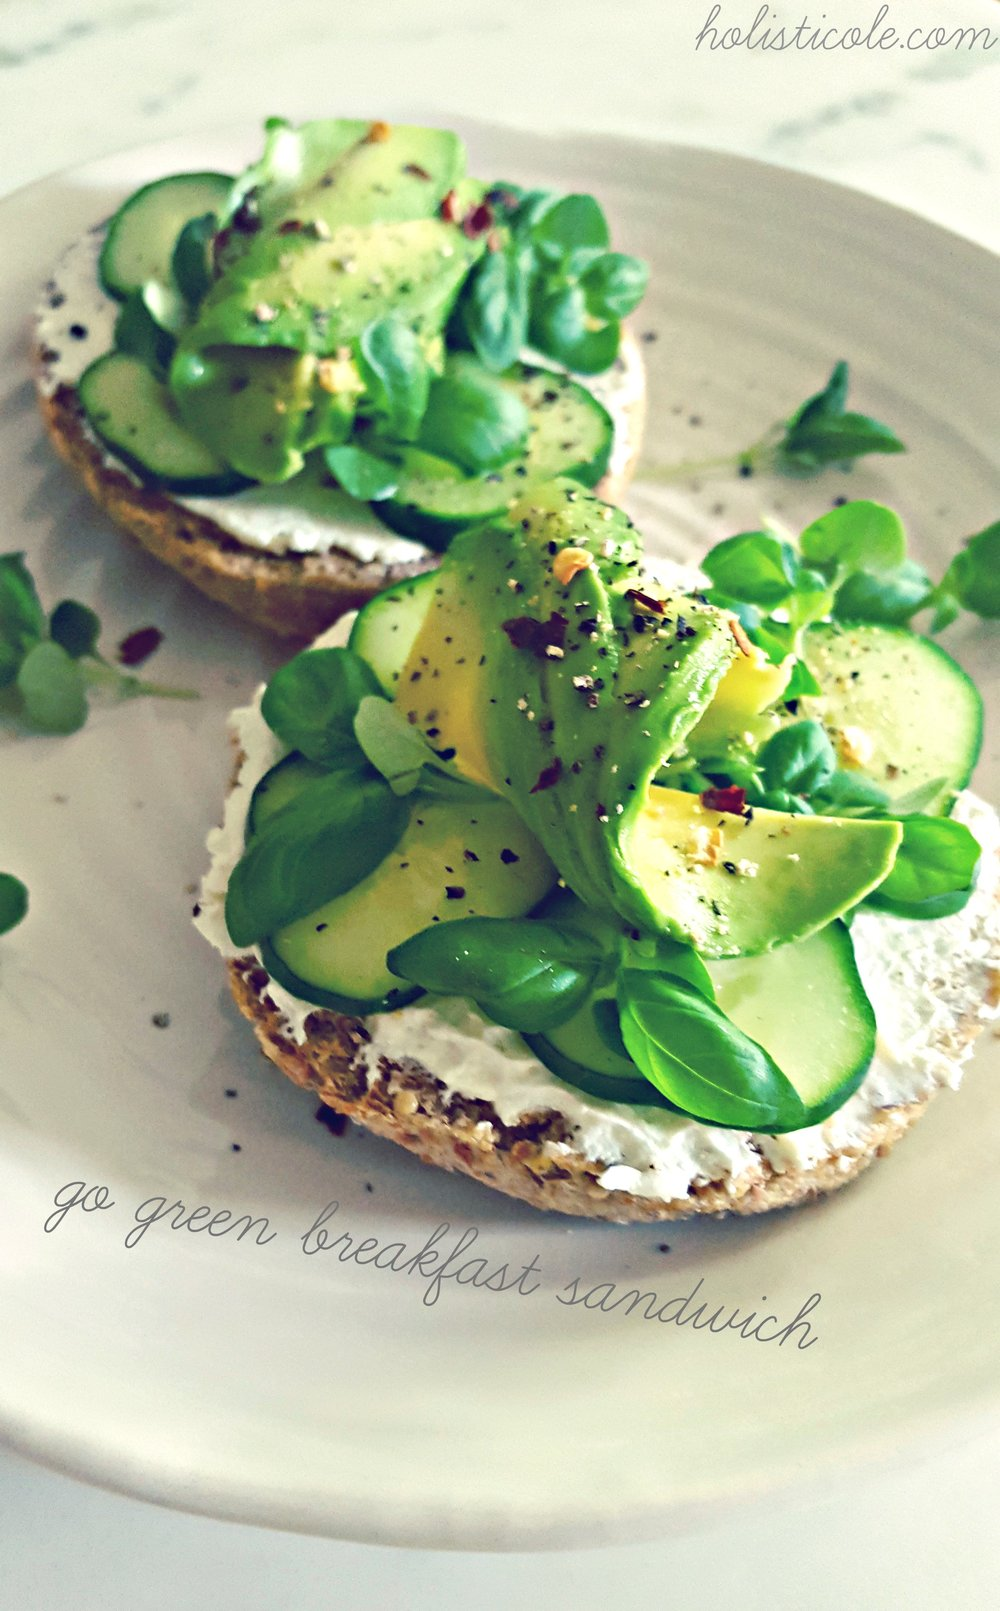 go green breakfast sandwich